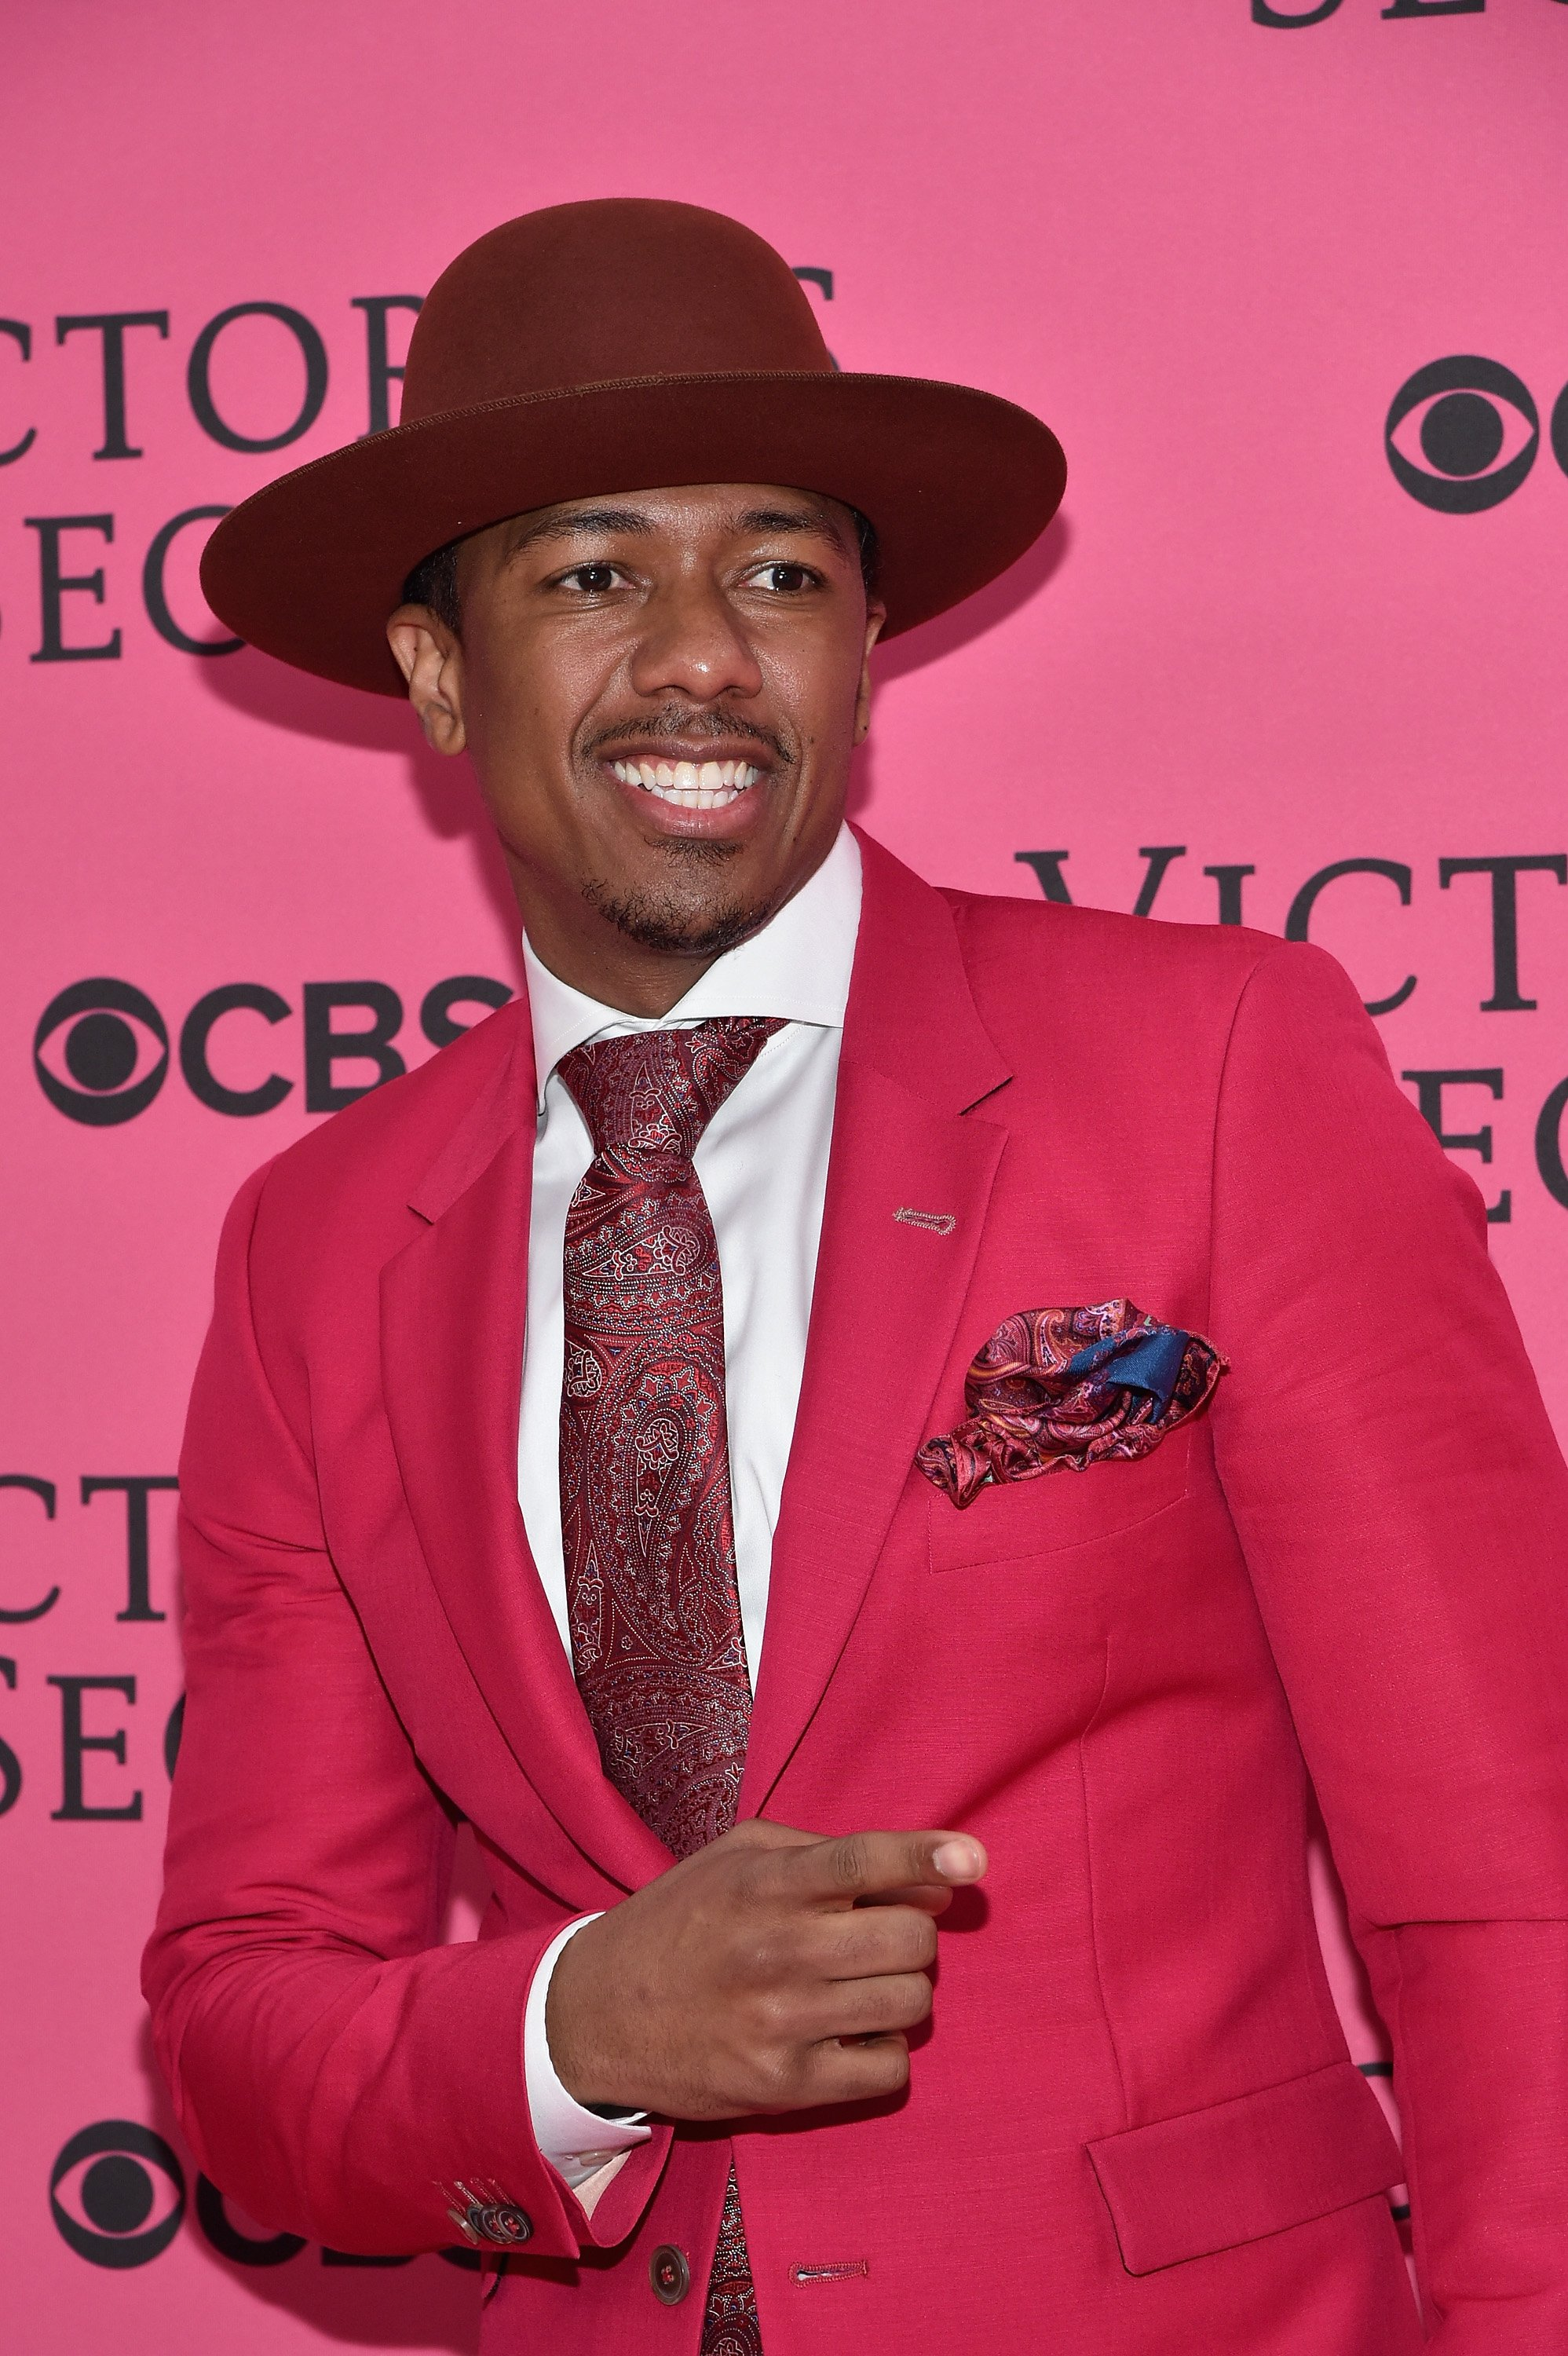 Nick Cannon at the Victoria's Secret Fashion Show at Lexington Avenue Armory on November 10, 2015 in New York City. |Source: Getty Images